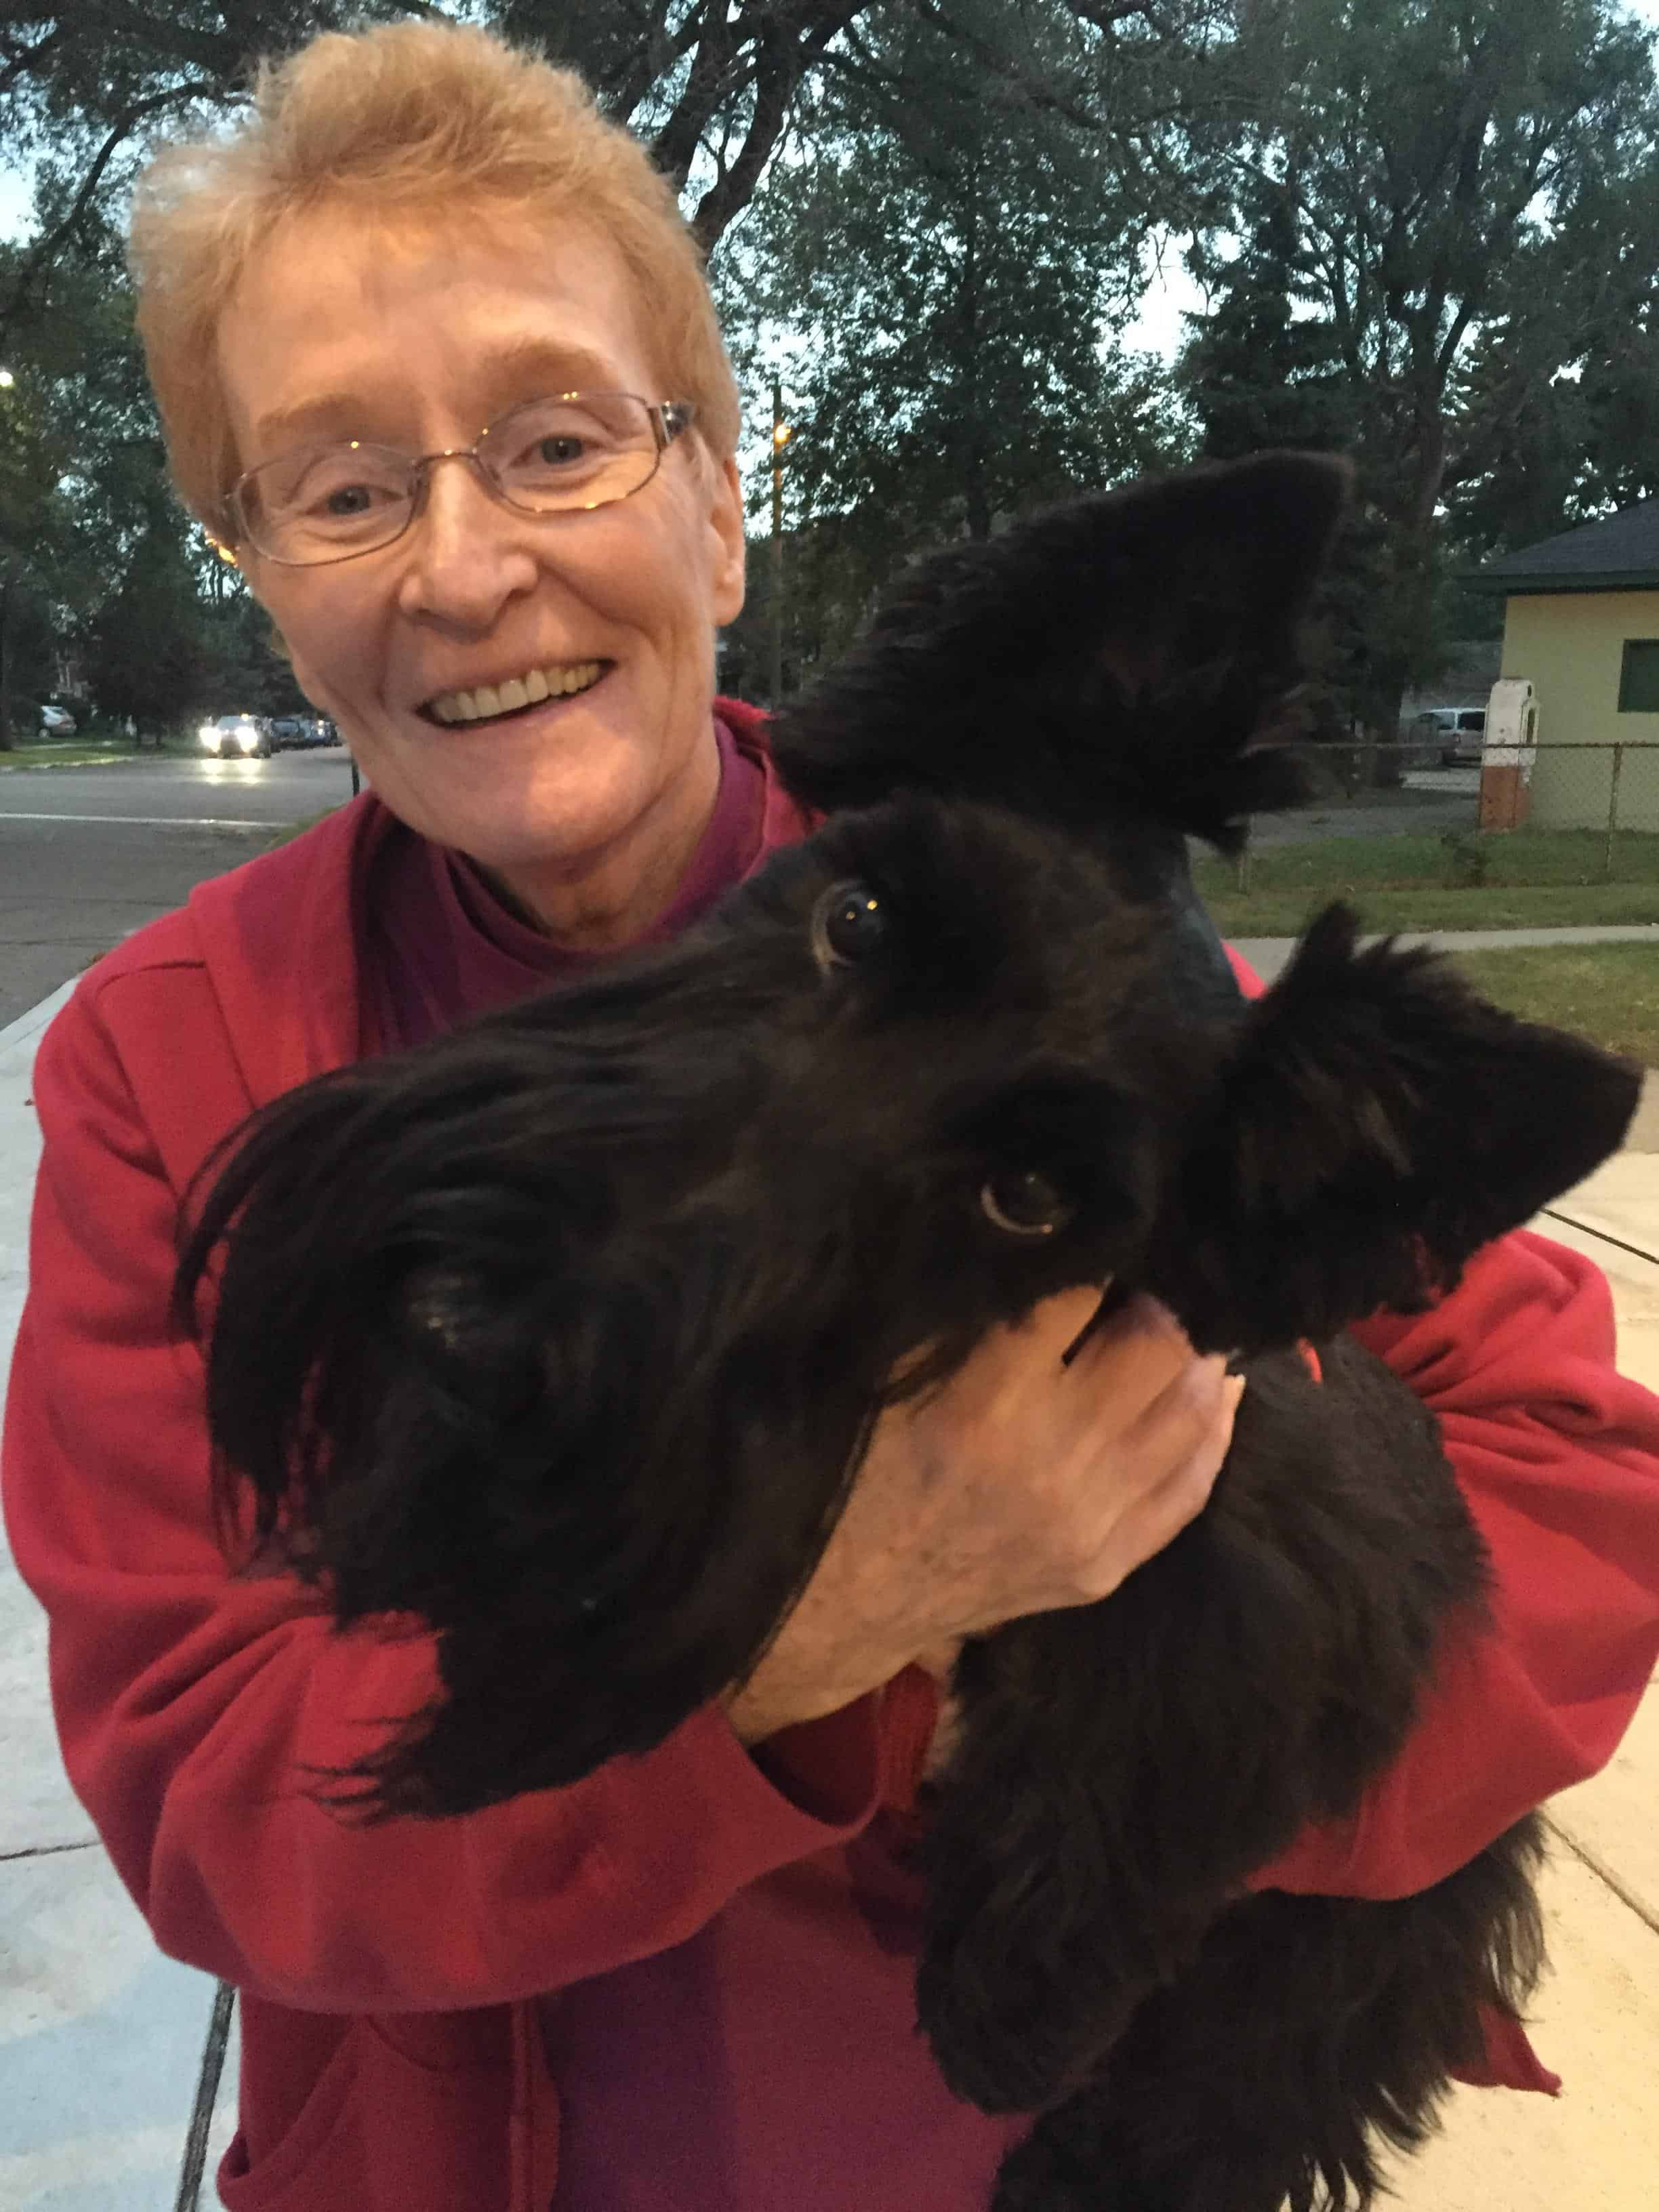 Blessing-of-the-Pets-Kathy-Sullivan-and-Scottie